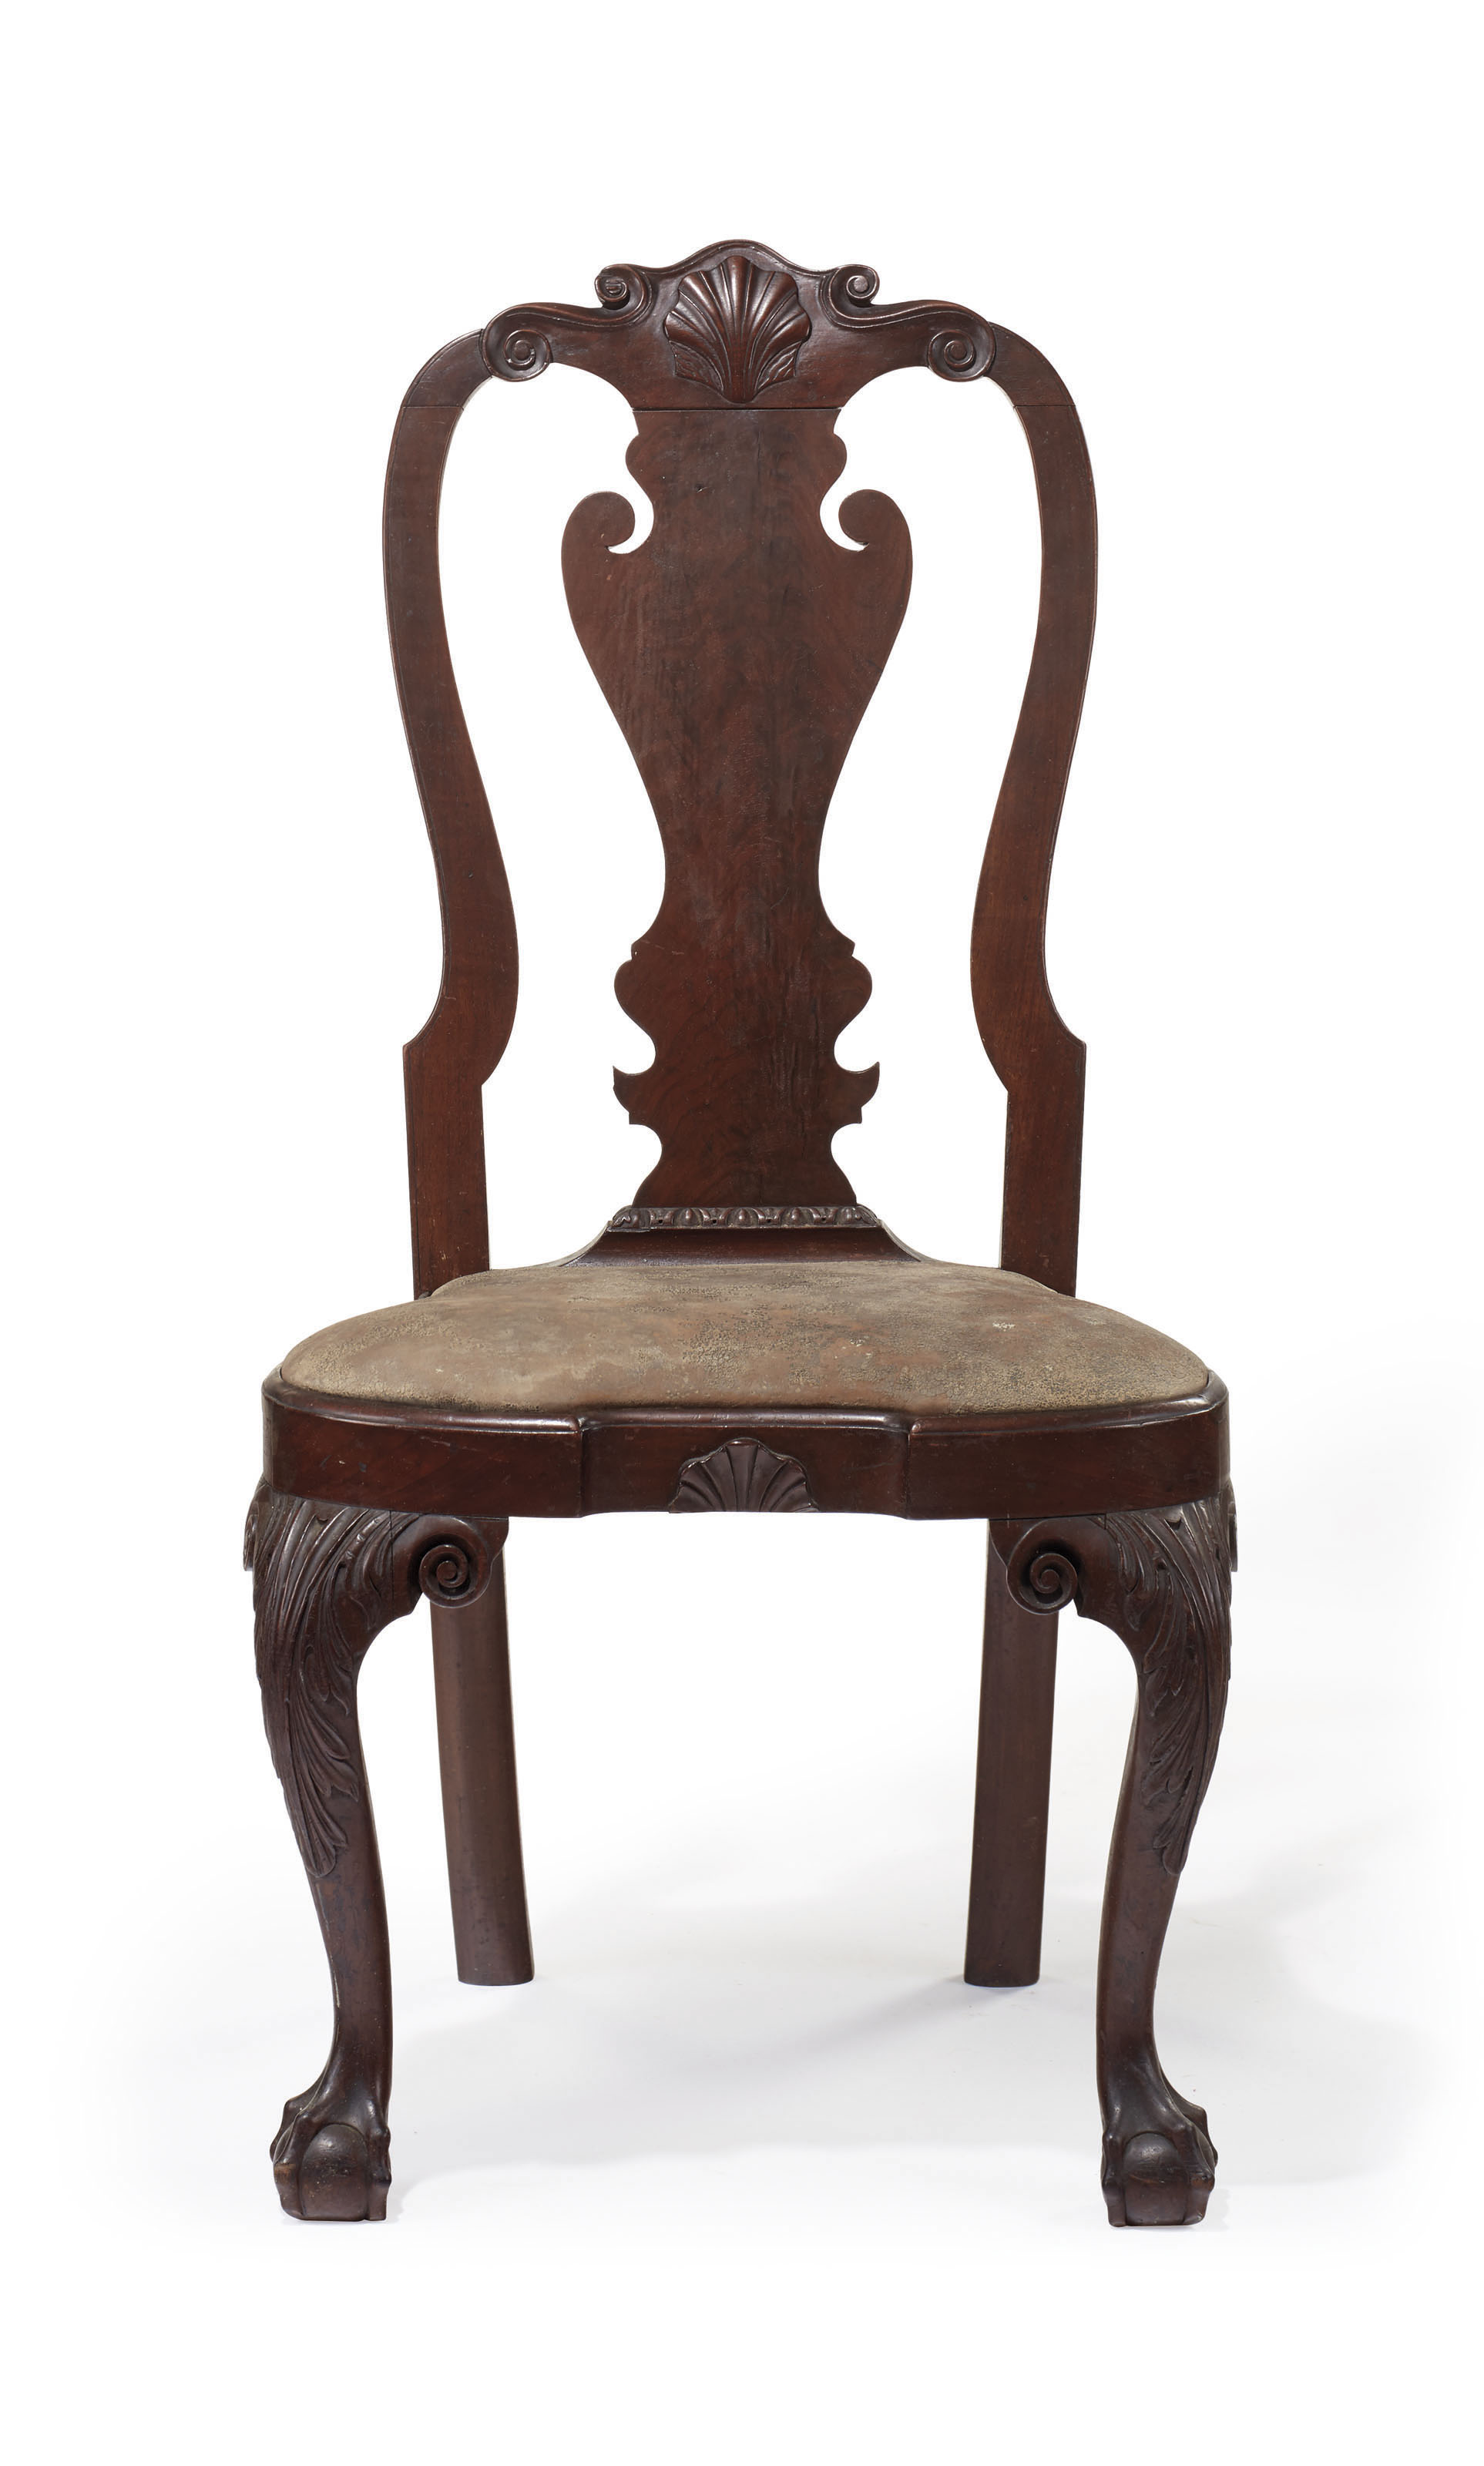 THE POWEL-GRIFFITTS FAMILY QUEEN ANNE CARVED WALNUT COMPASS-SEAT SIDE CHAIR